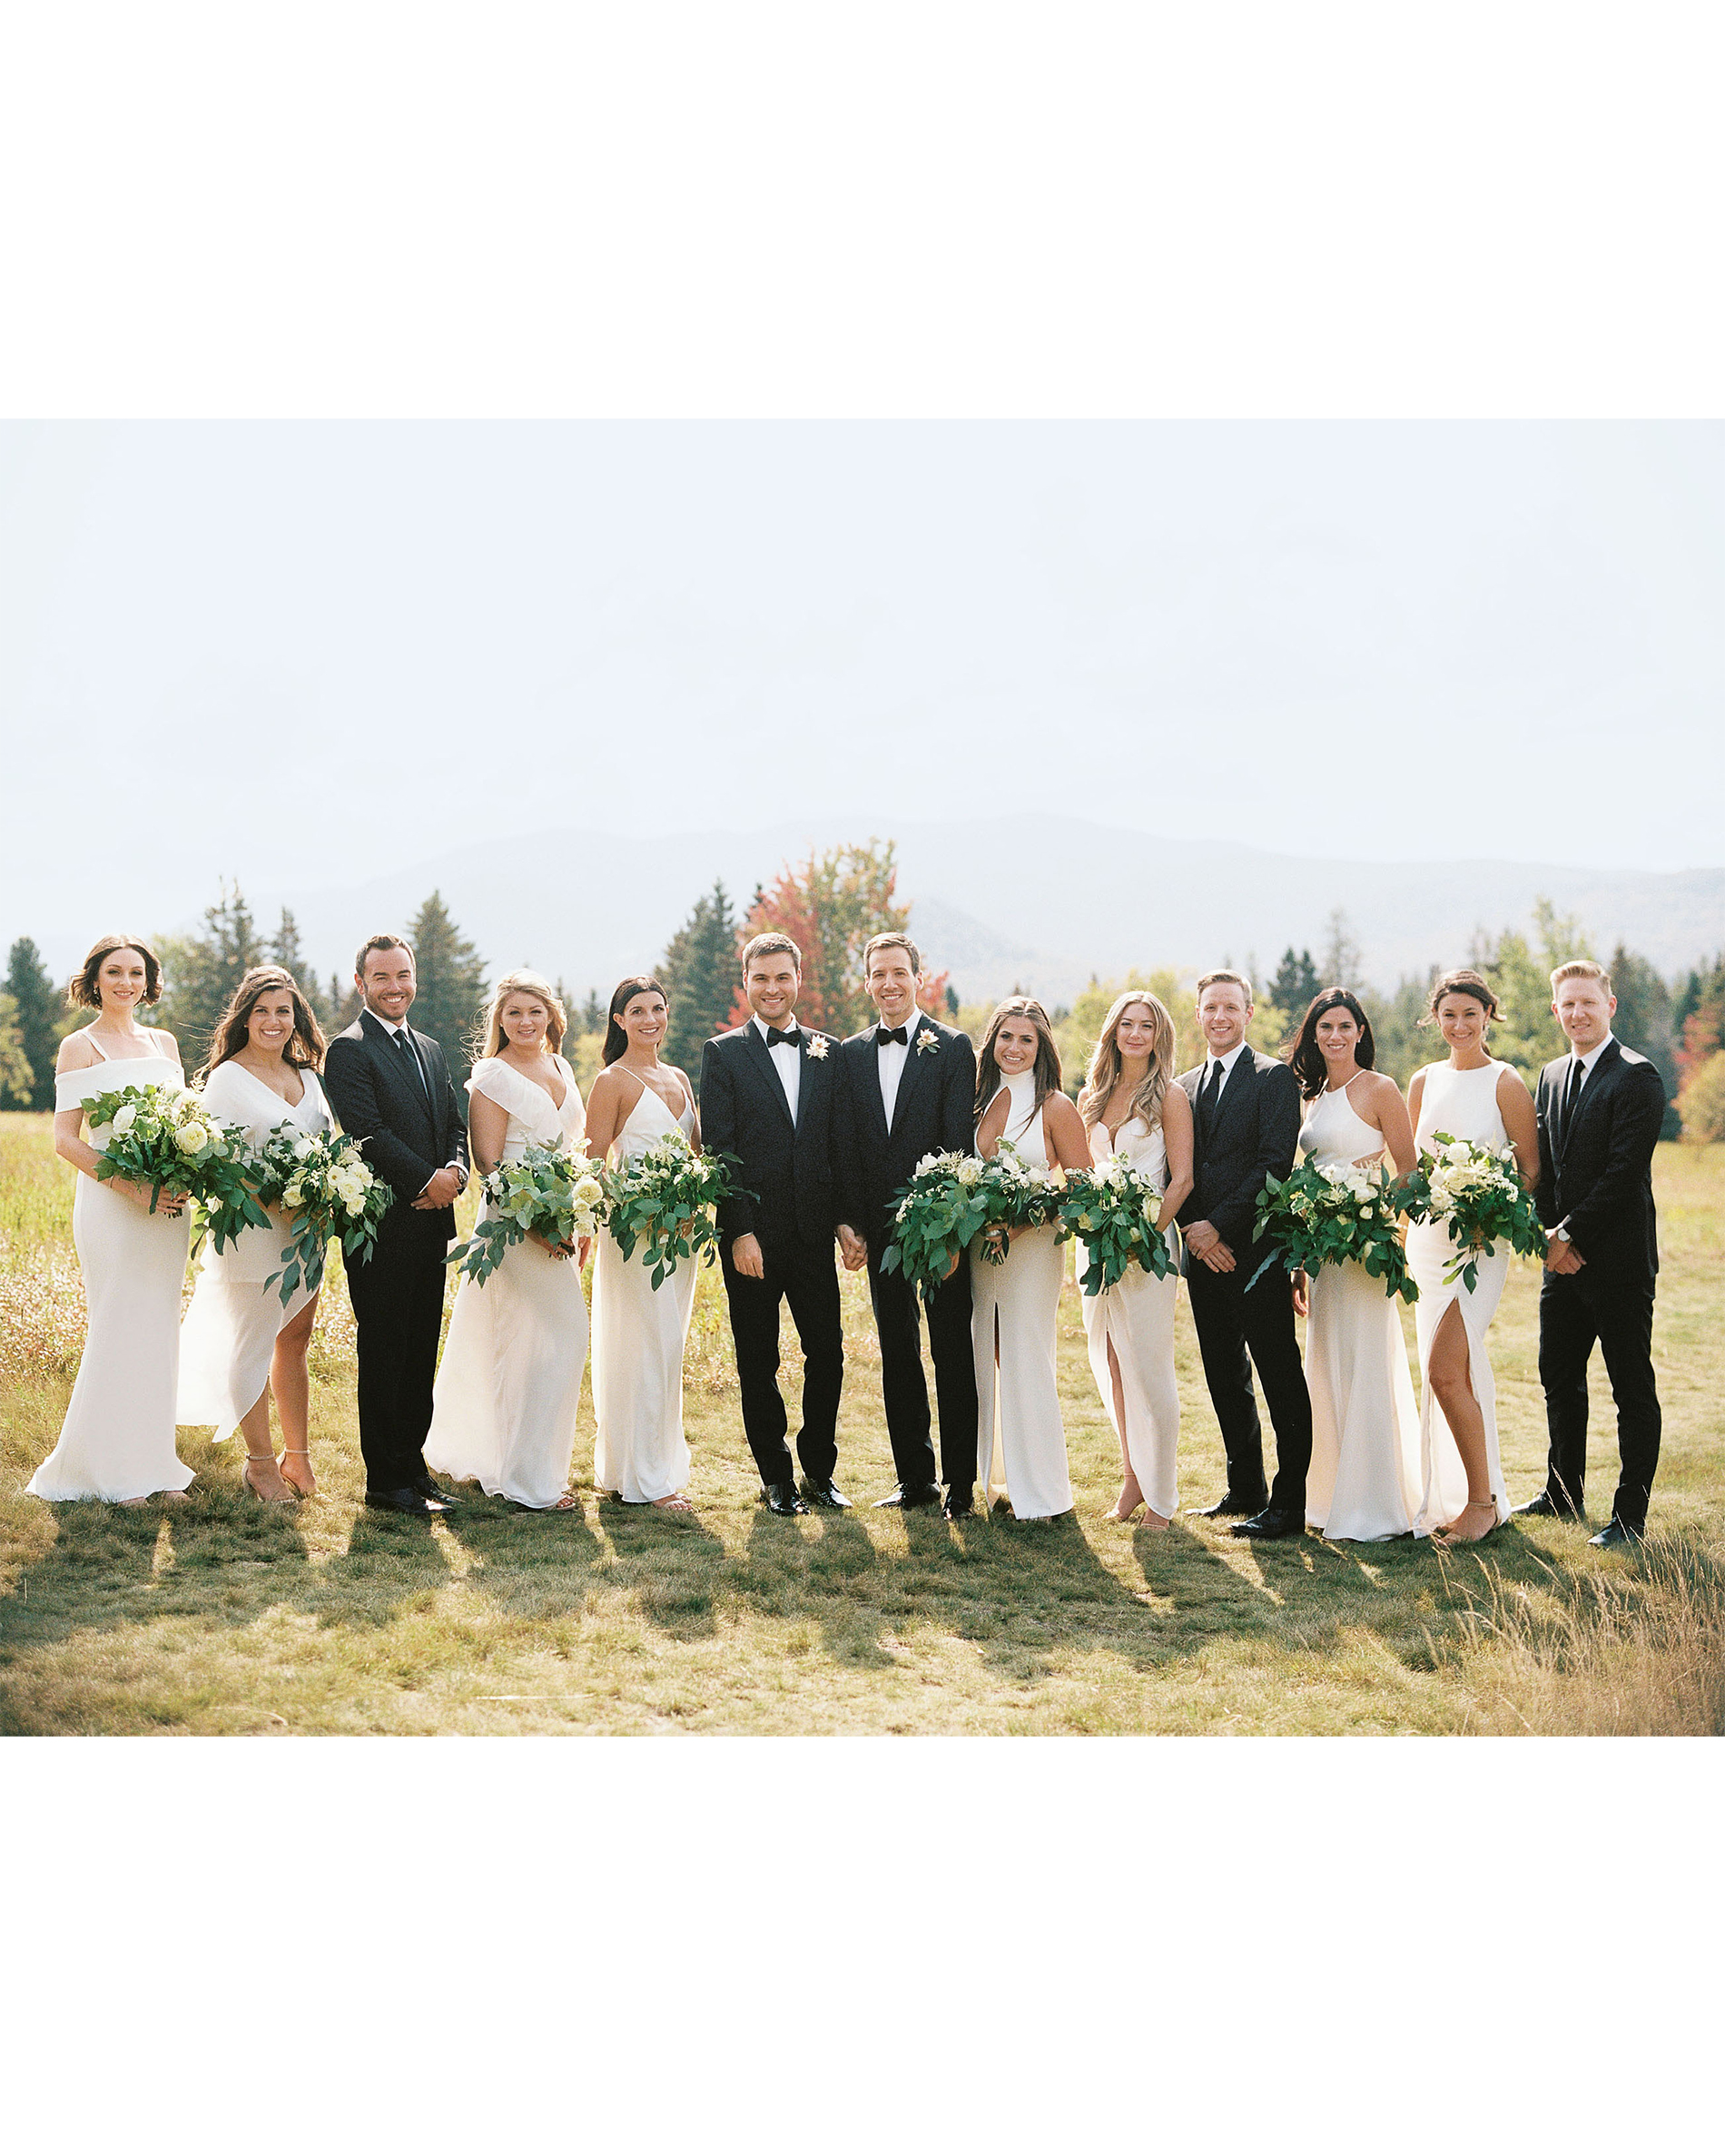 tory sean wedding lake placid new york wedding party